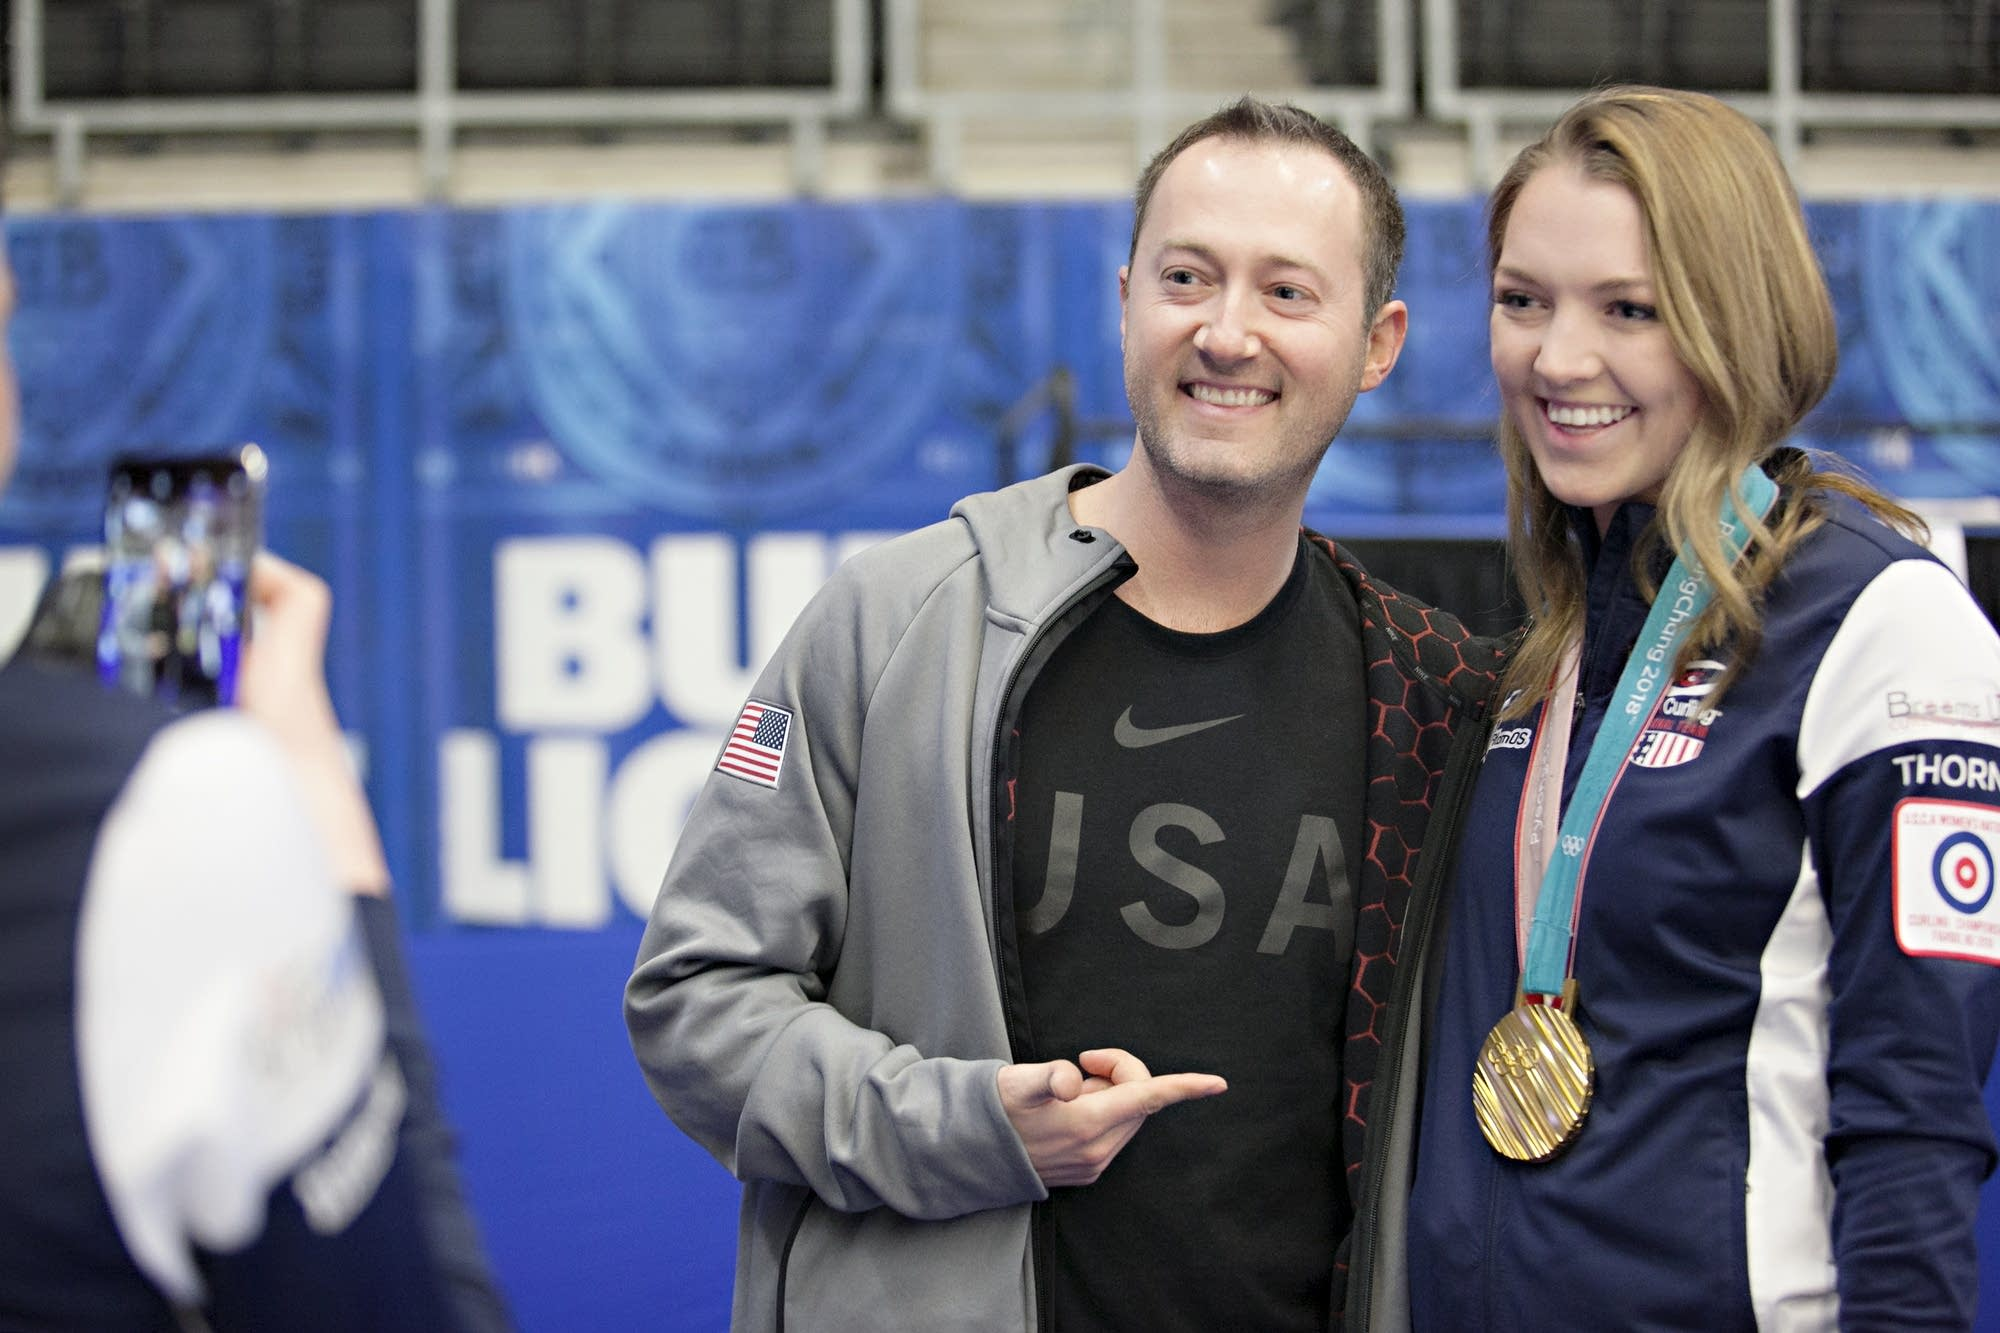 Olympic curler Tyler George poses for a photo with curler Lexi Lanigan.